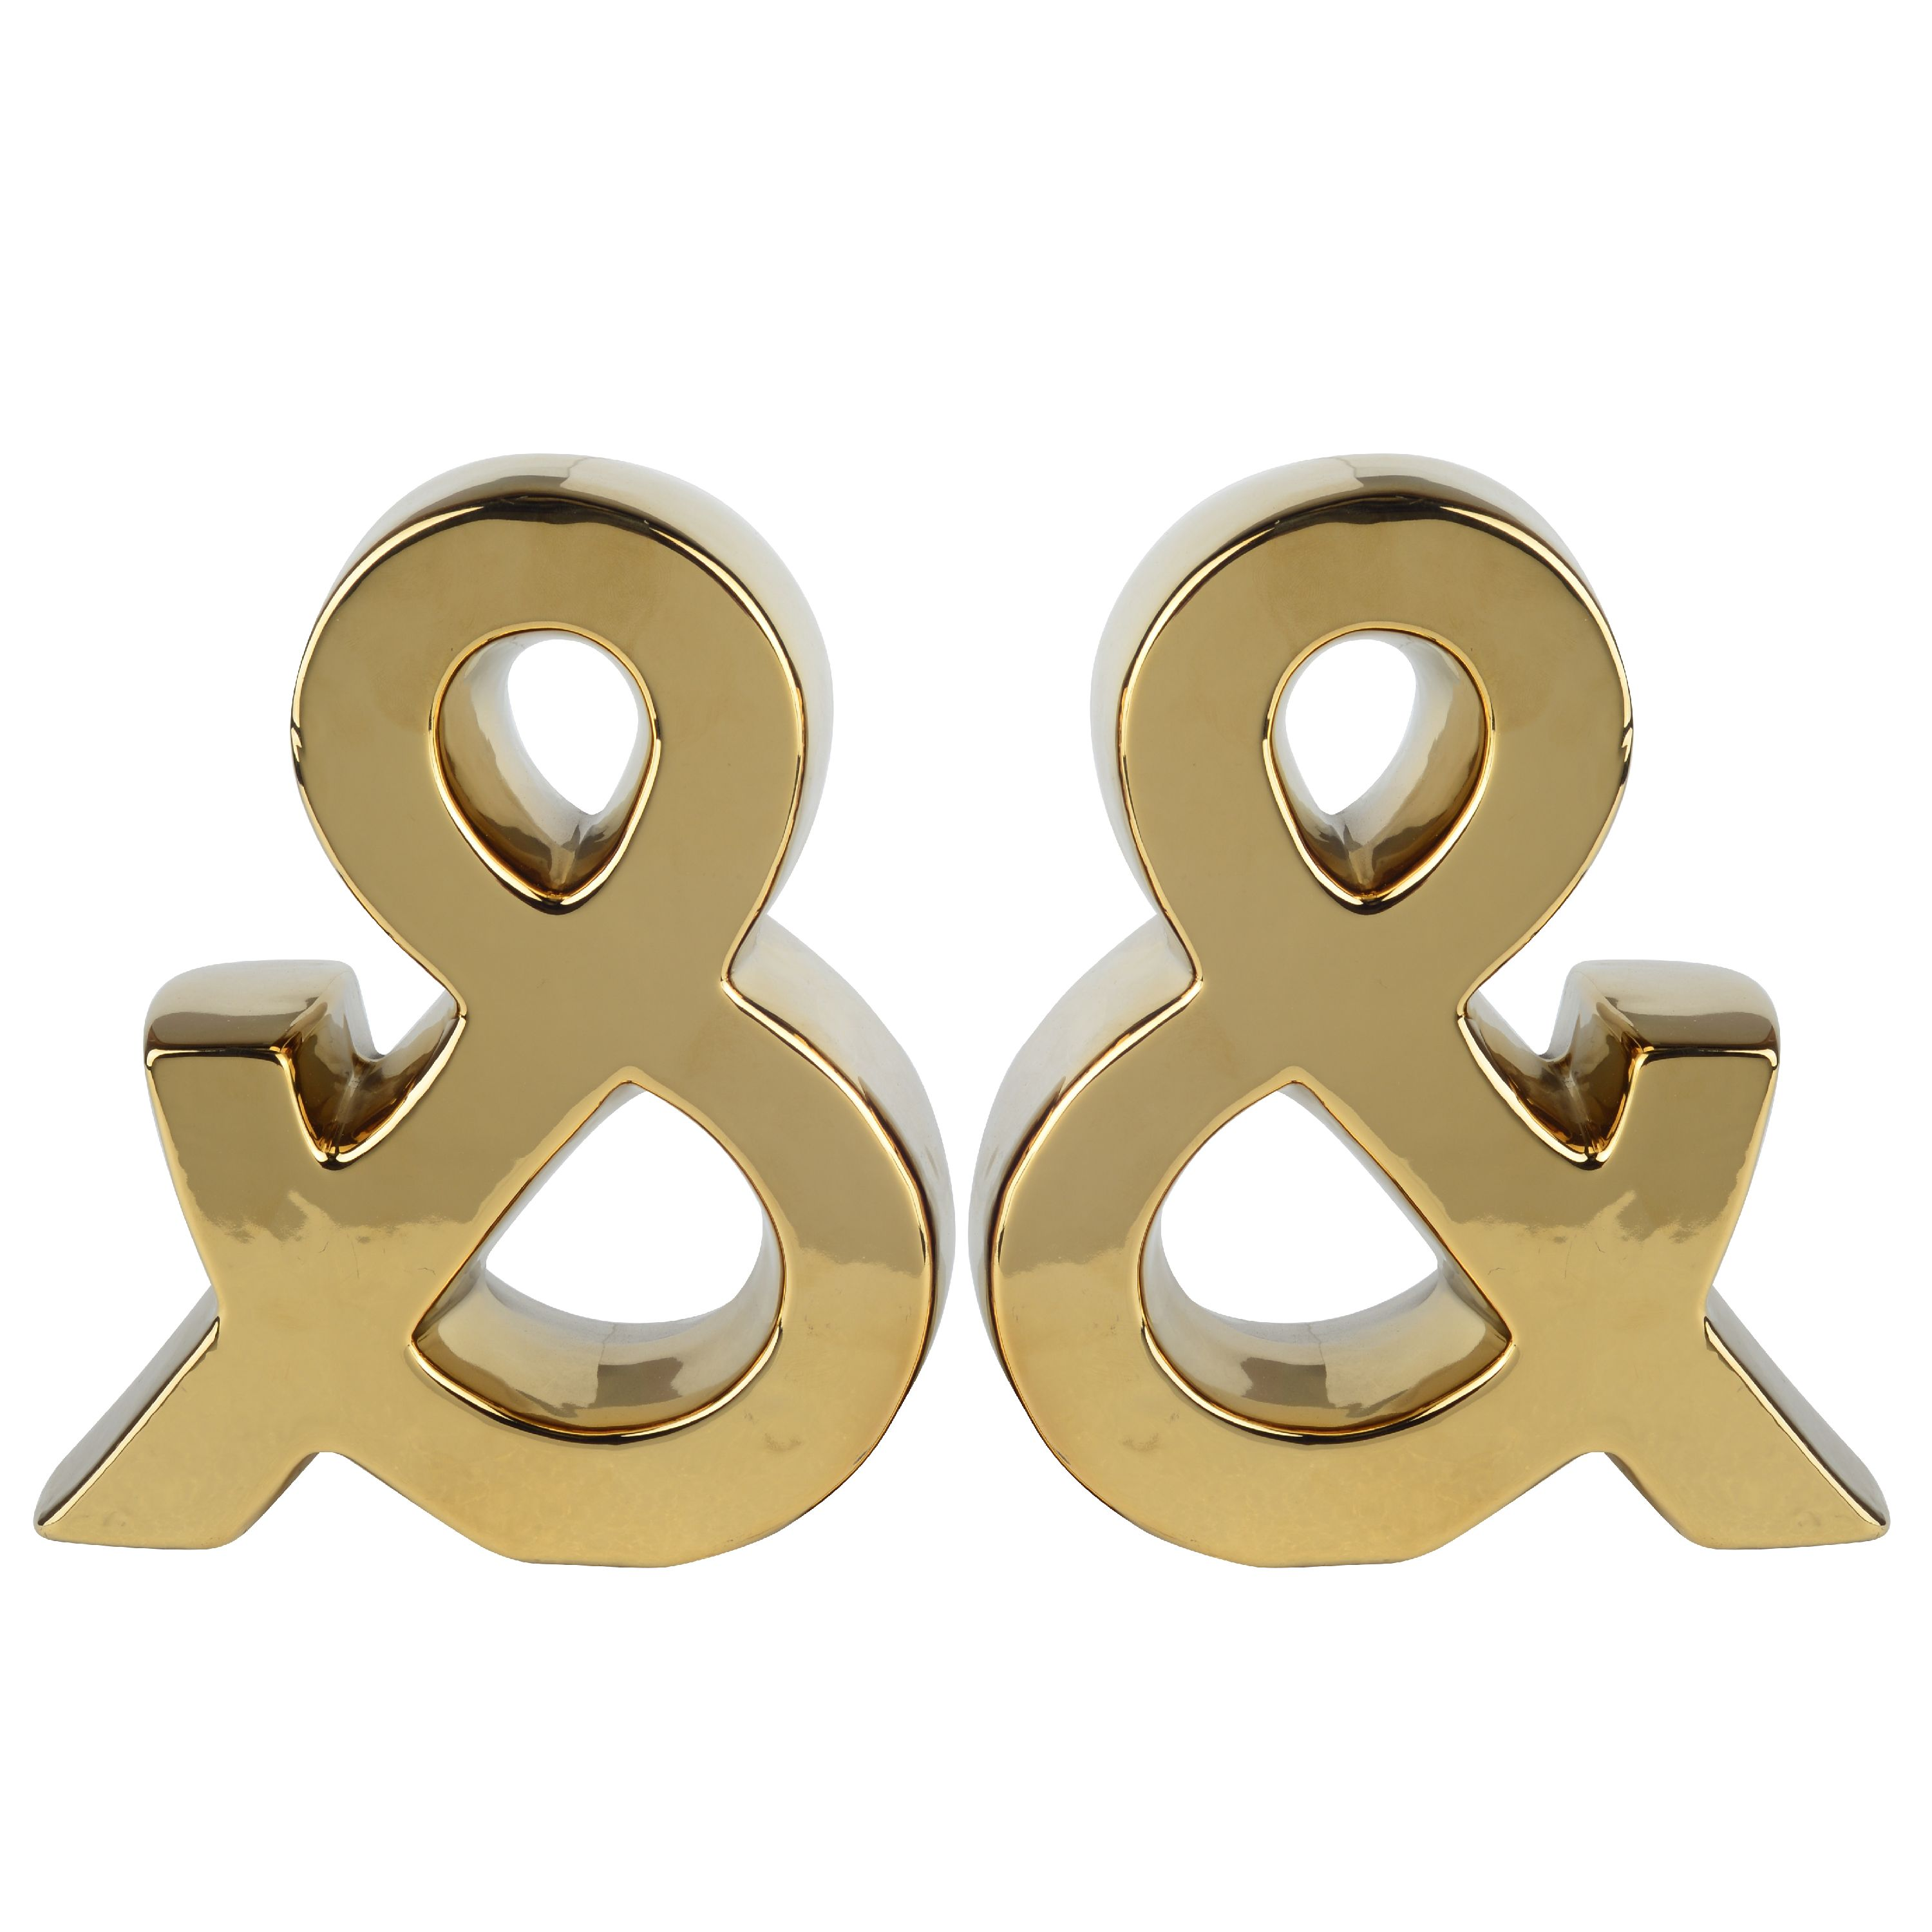 A&B Home Urban Vogue Ampersand Bookend, Gold, Set of 2 by A&B Home